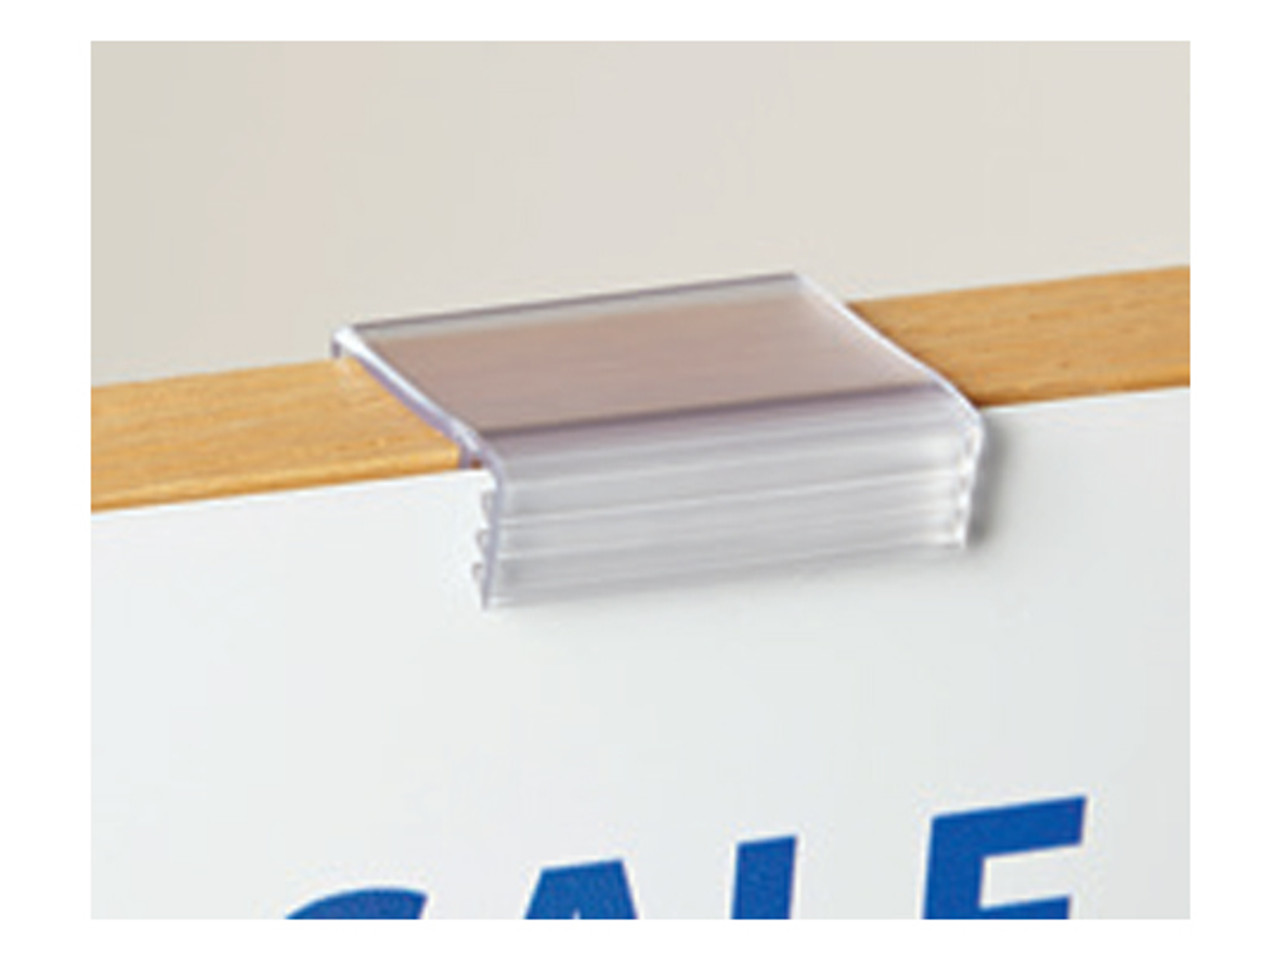 Merchandising sign gripper attaches to wood and glass tables for displaying pricing and product information.